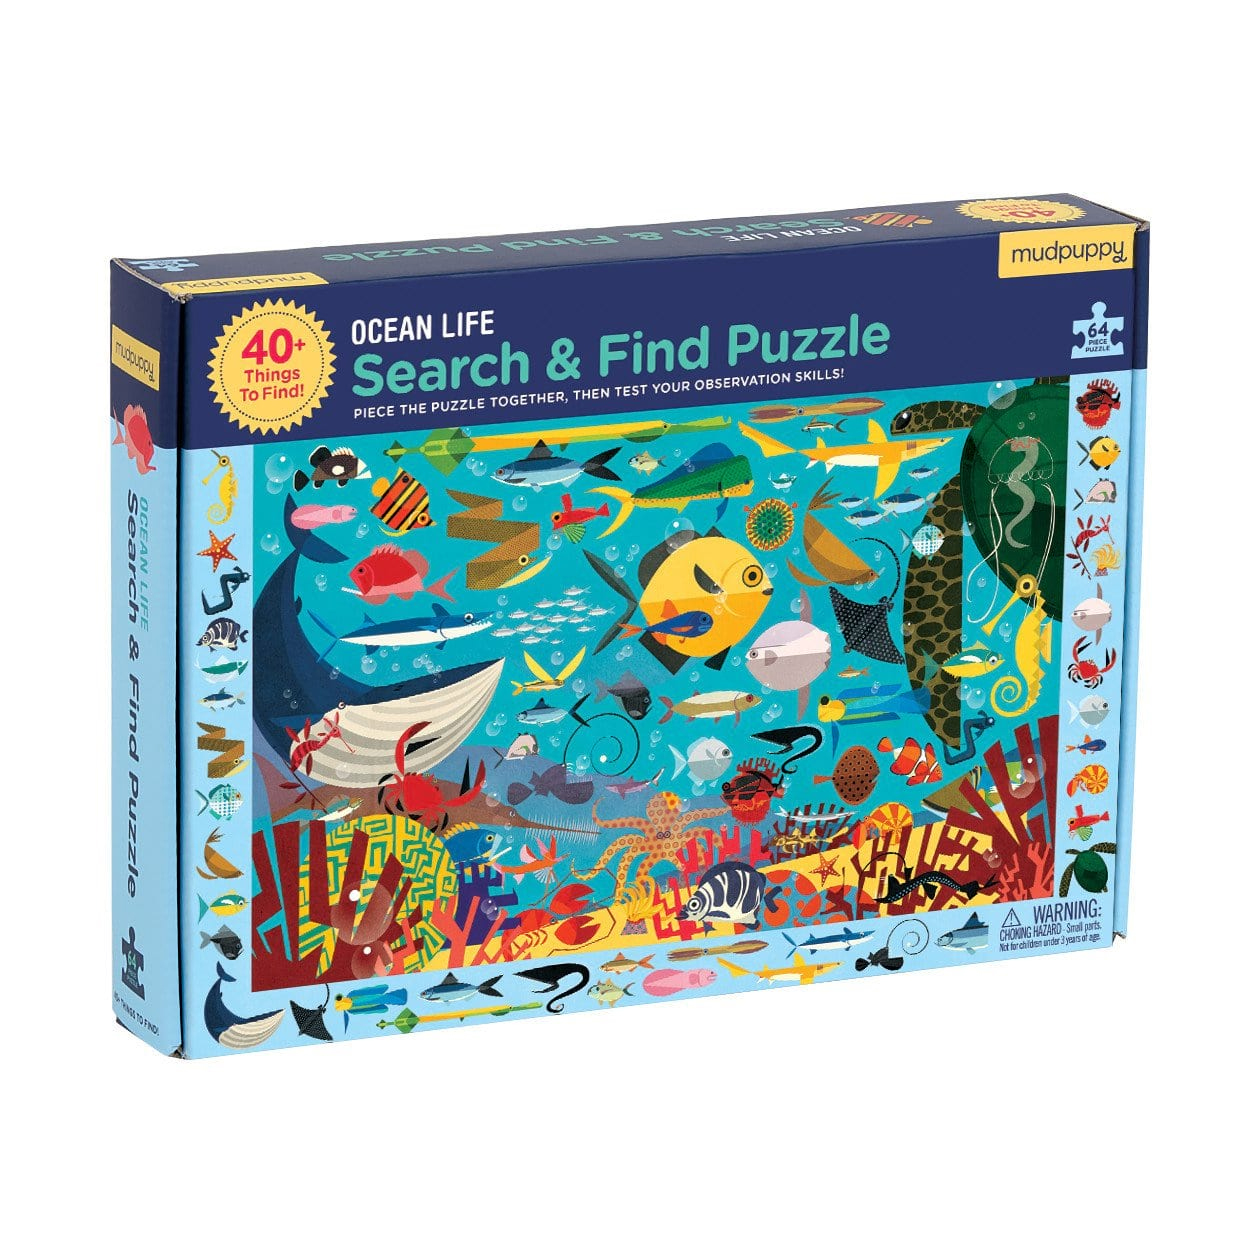 Search and Find Ocean Life Puzzle by Mudpuppy 64pc 4+